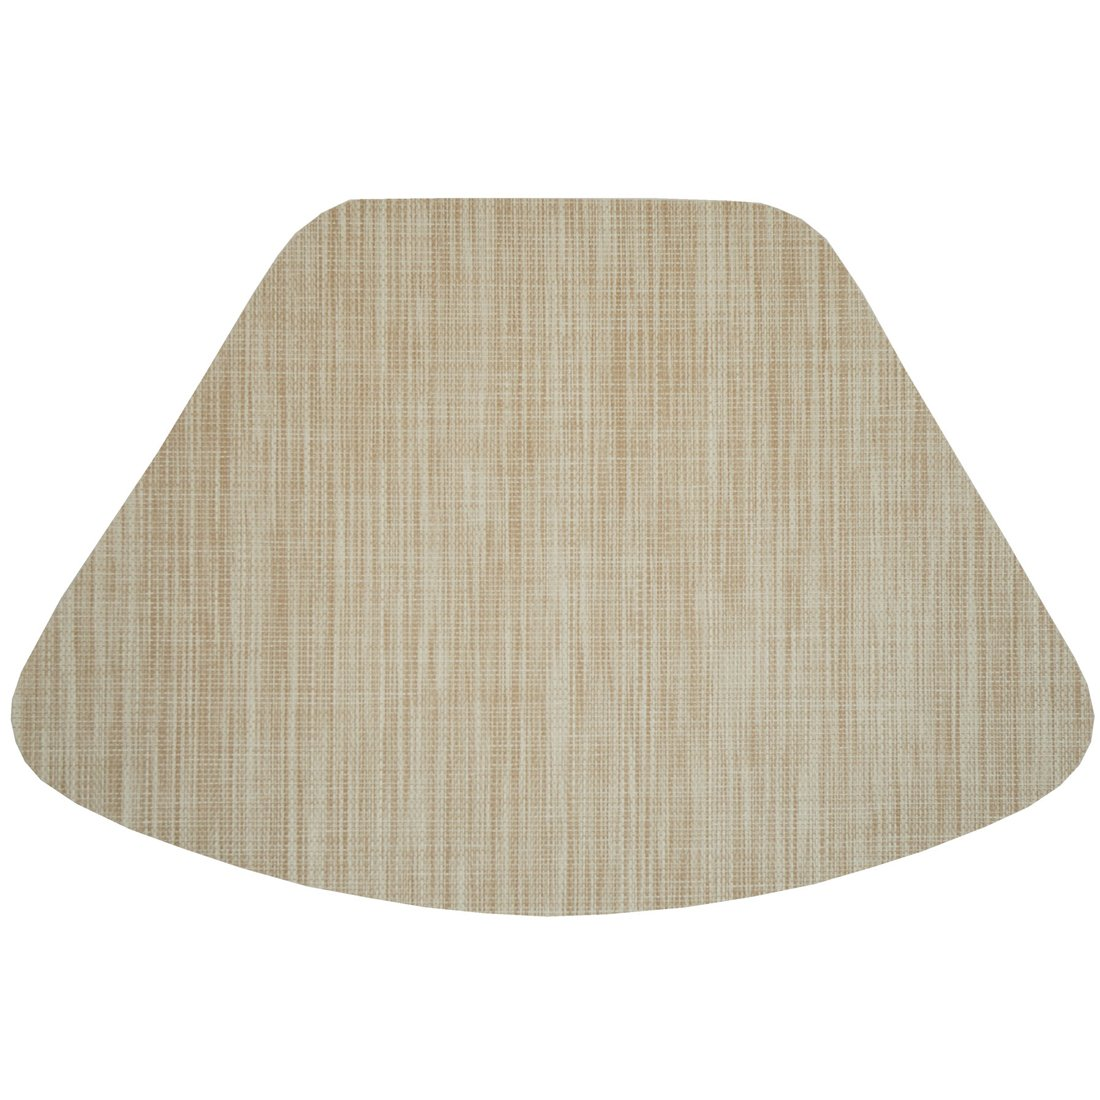 Amazon.com: Set Of 2 Cream/Tan Wipe Clean Wedge Shaped Placemats For Round  Tables: Home U0026 Kitchen